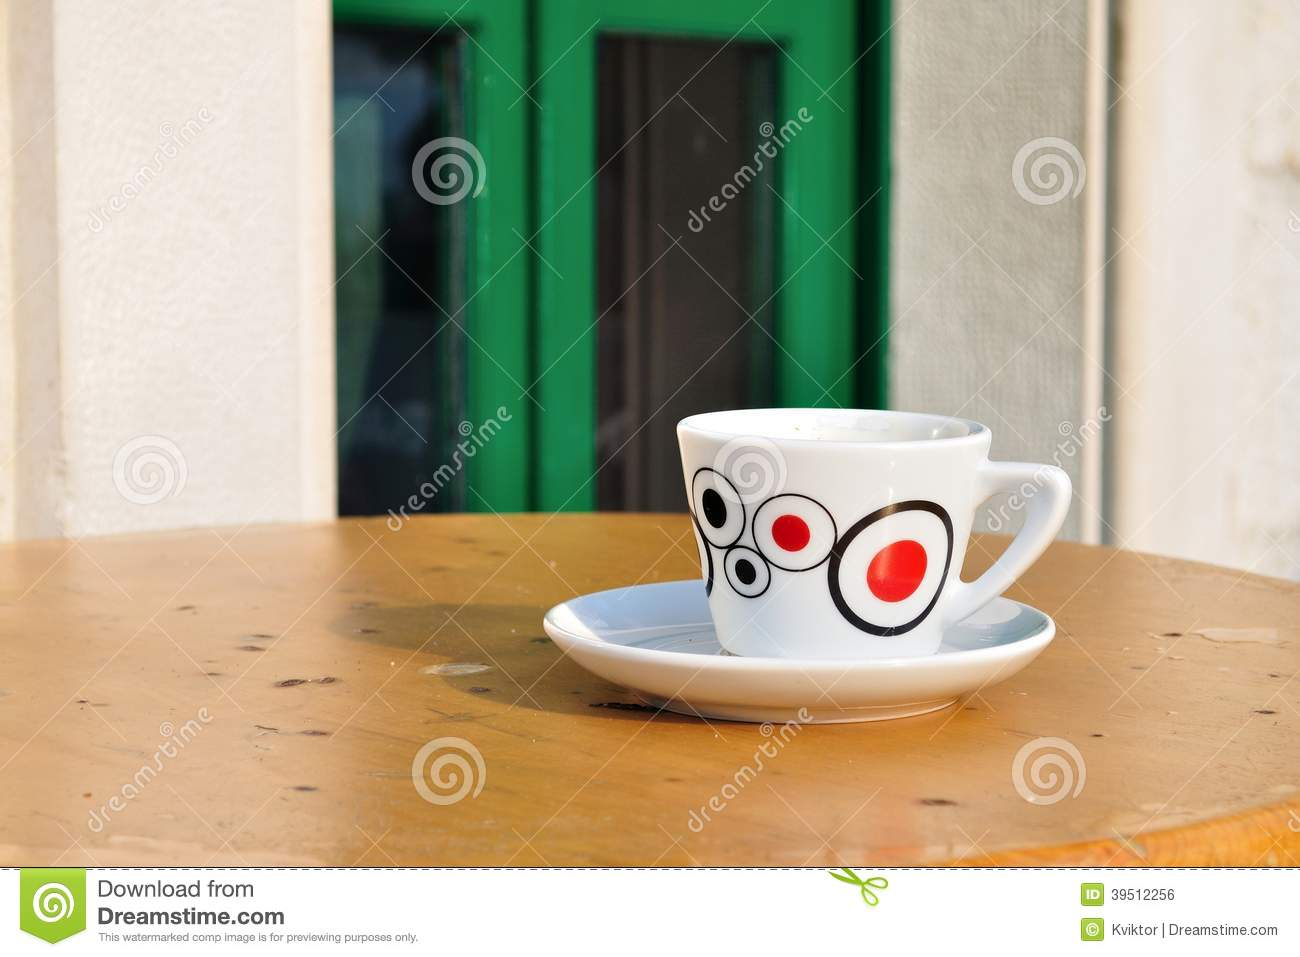 White coffee cup on a brown table